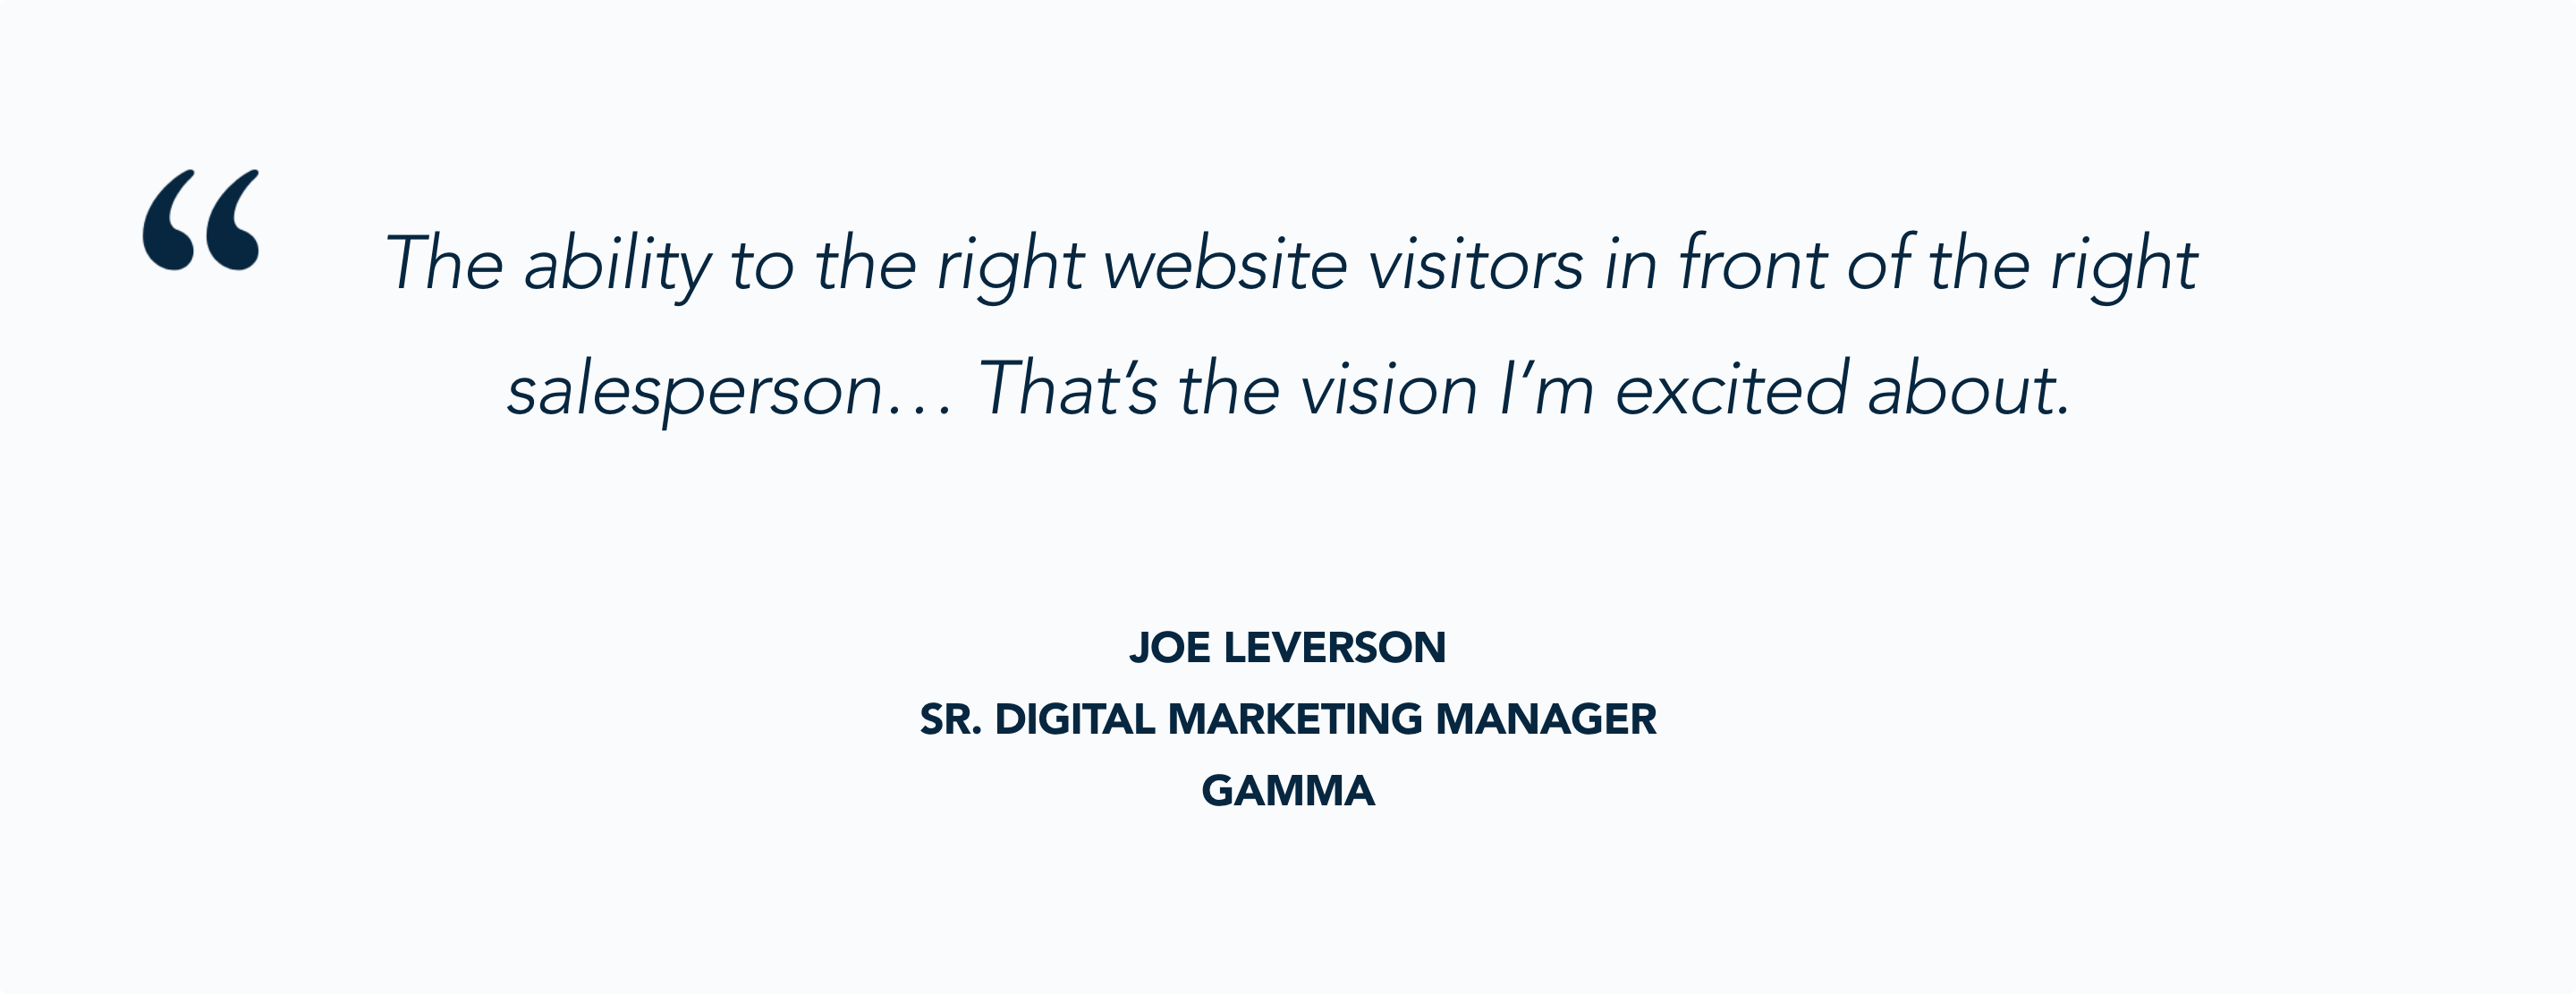 Joe Leverson on using routing to power timely website conversations